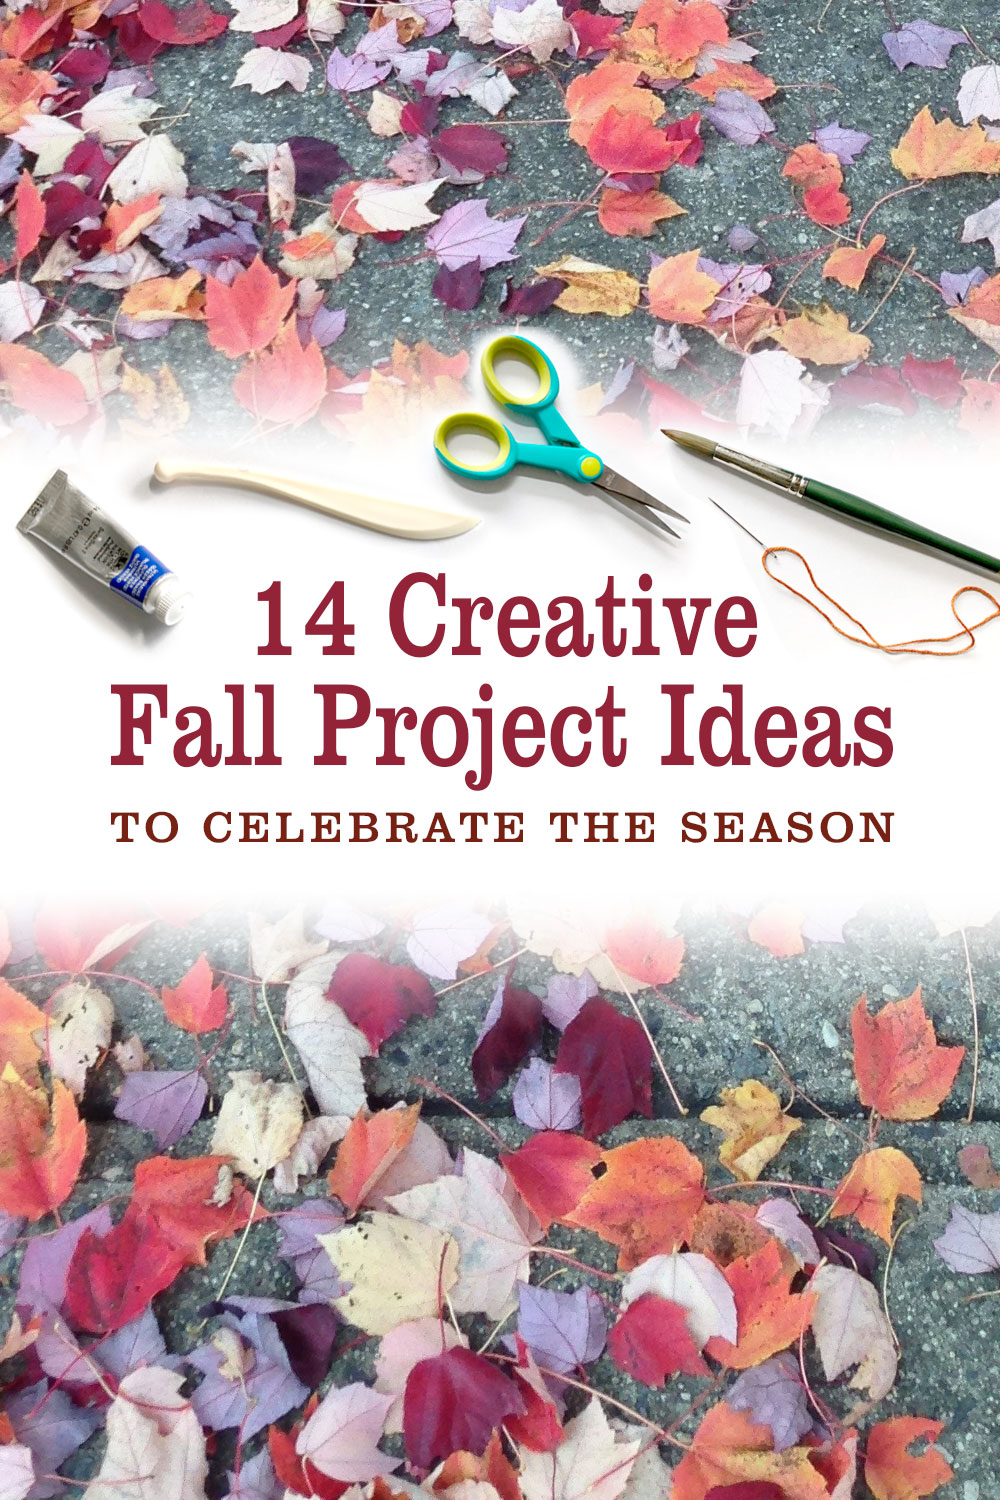 14 Creative Fall Project Ideas